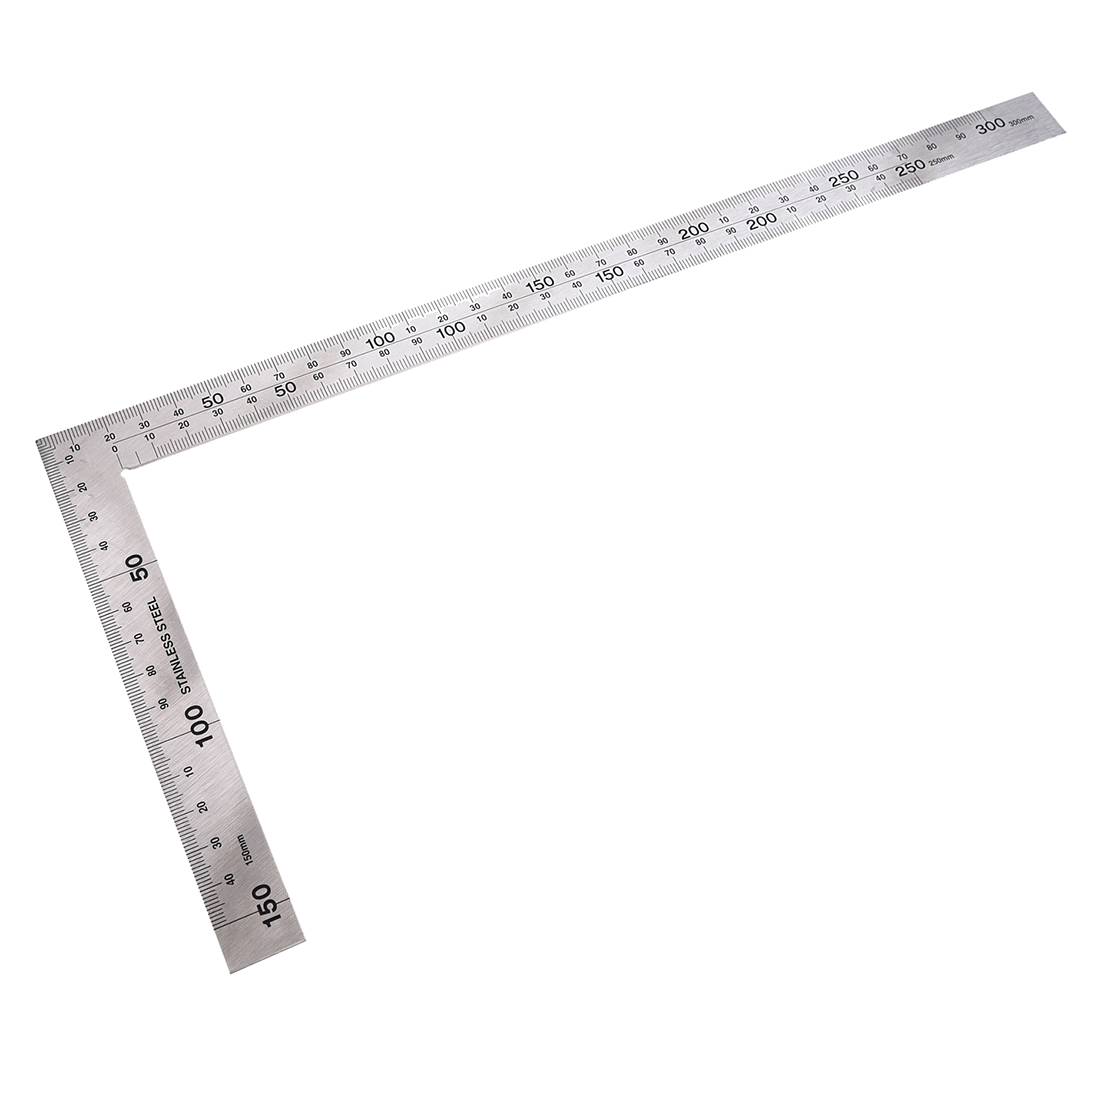 SOSW-150 x 300mm Stainless Steel Metric Try Square Ruler sosw 150 x 300mm stainless steel metric try square ruler